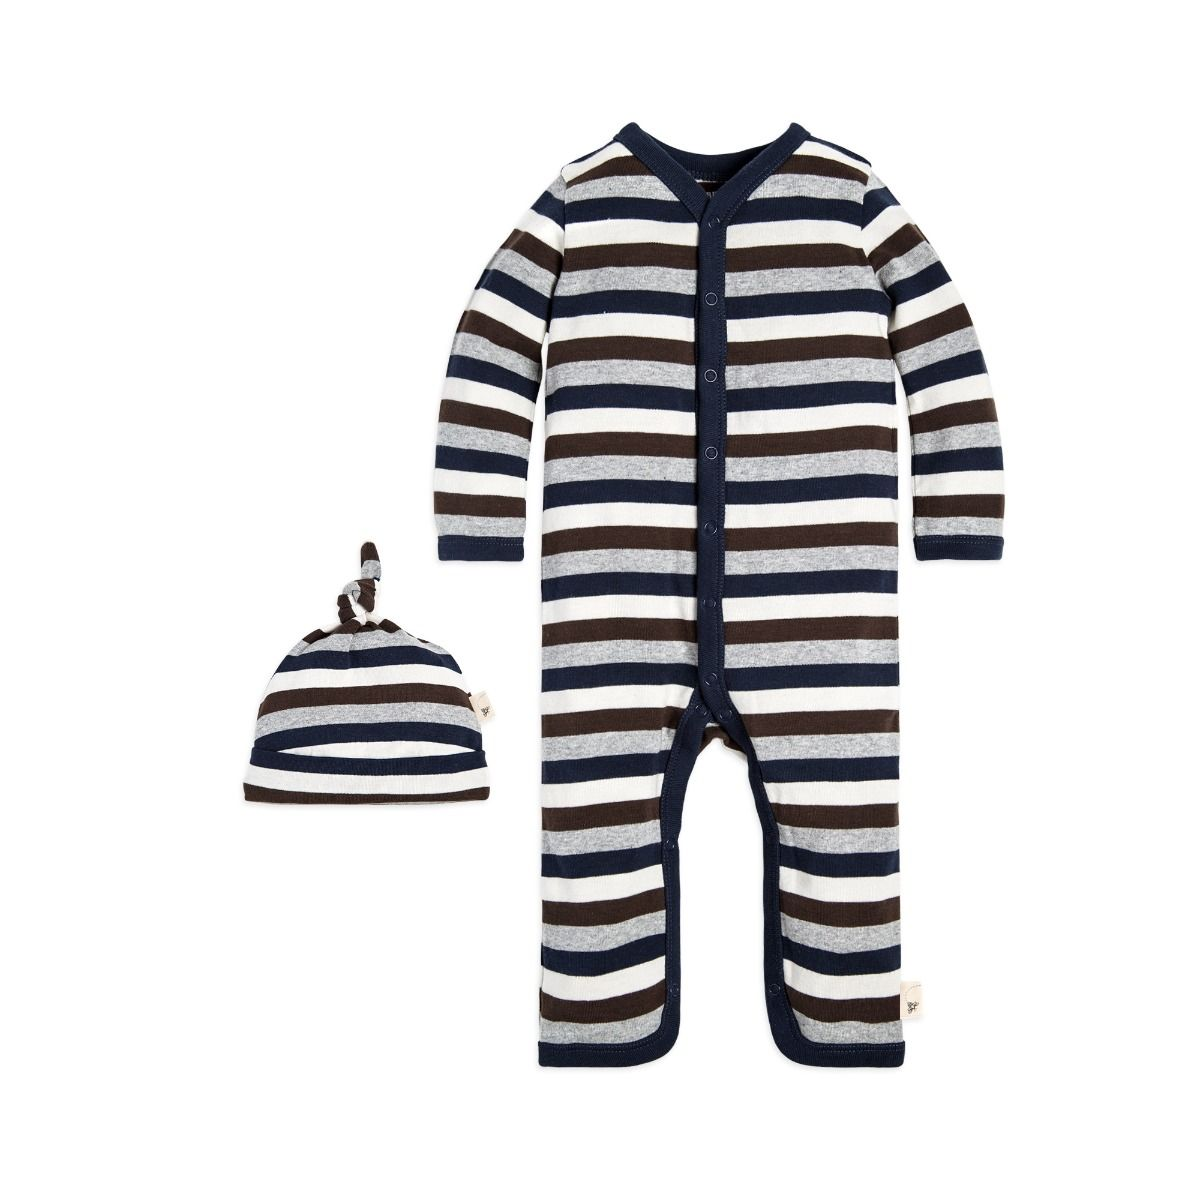 Multi Stripe Organic Baby Cotton One Piece Jumpsuit & Hat Set